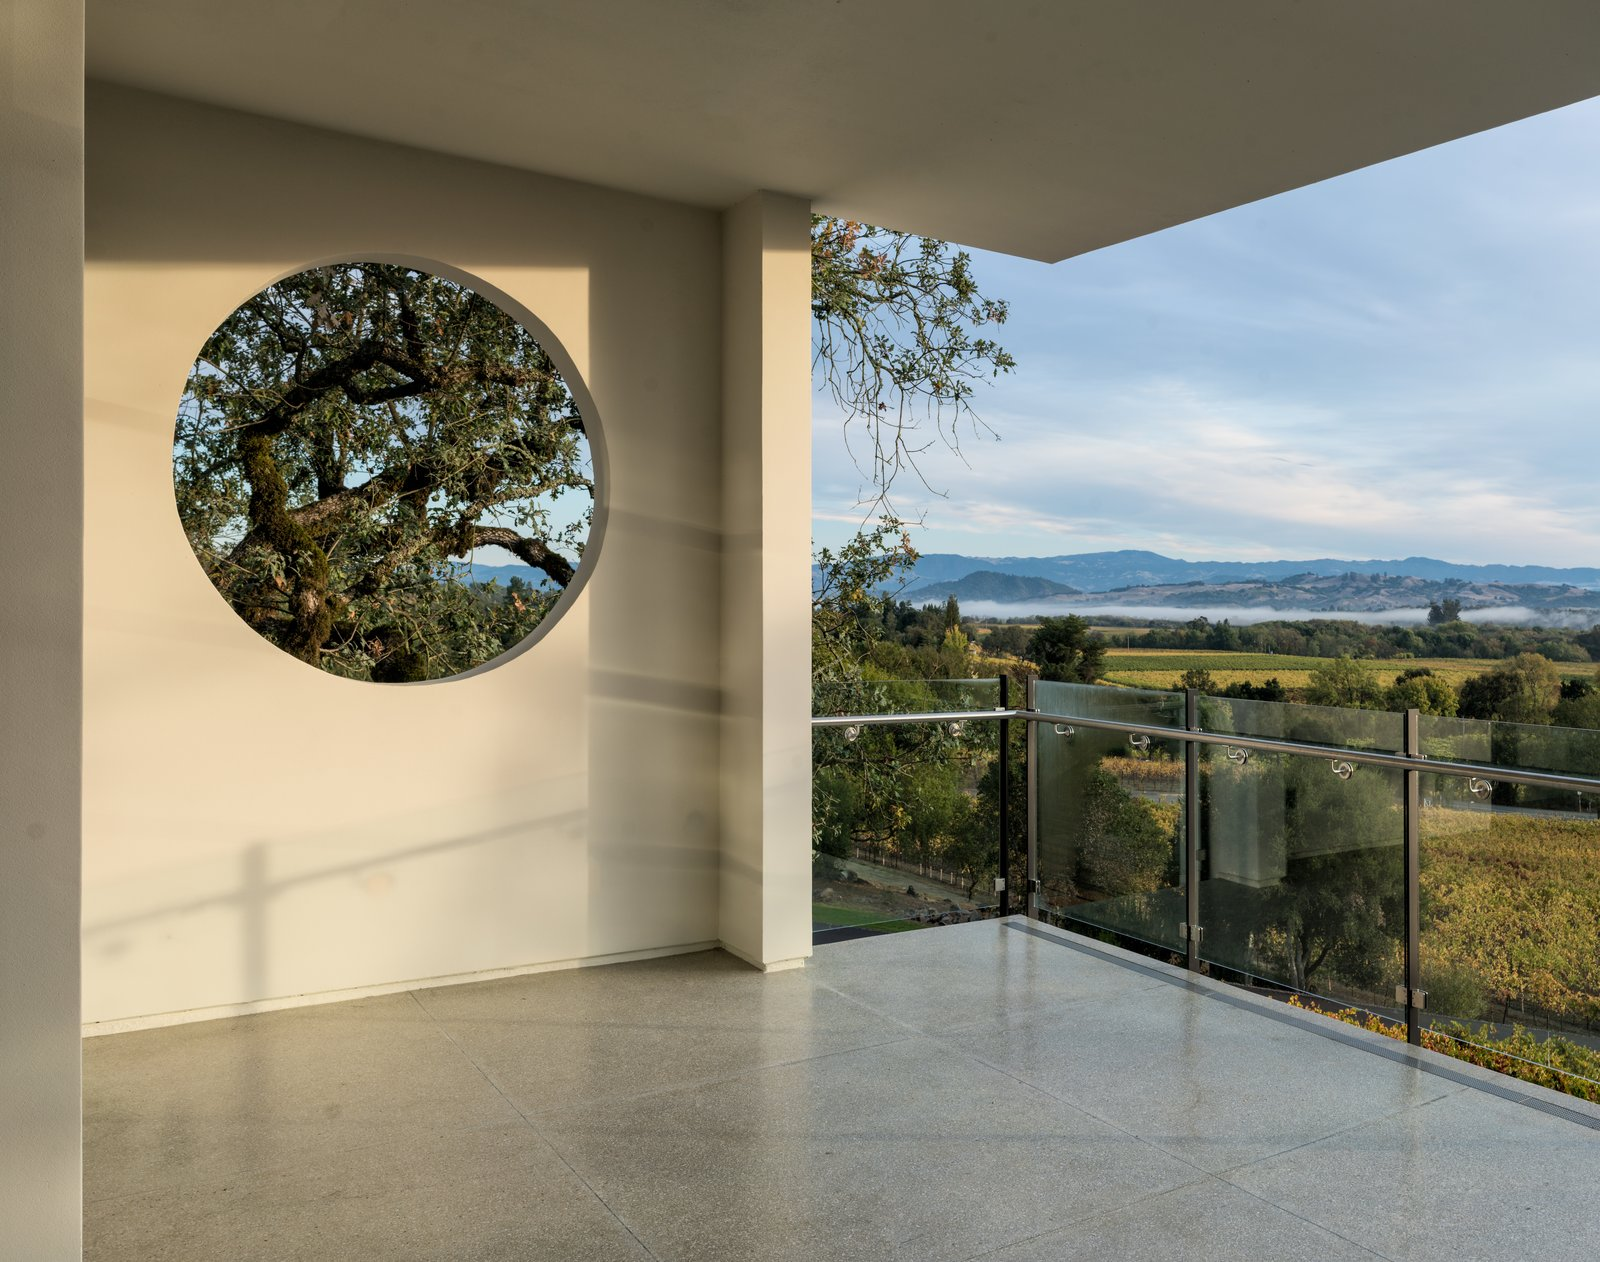 Framed views of the surrounding landscape from main floor level Tagged: Outdoor, Trees, Hardscapes, and Concrete Patio, Porch, Deck.  Hilltop Haven by Randy Thueme Design